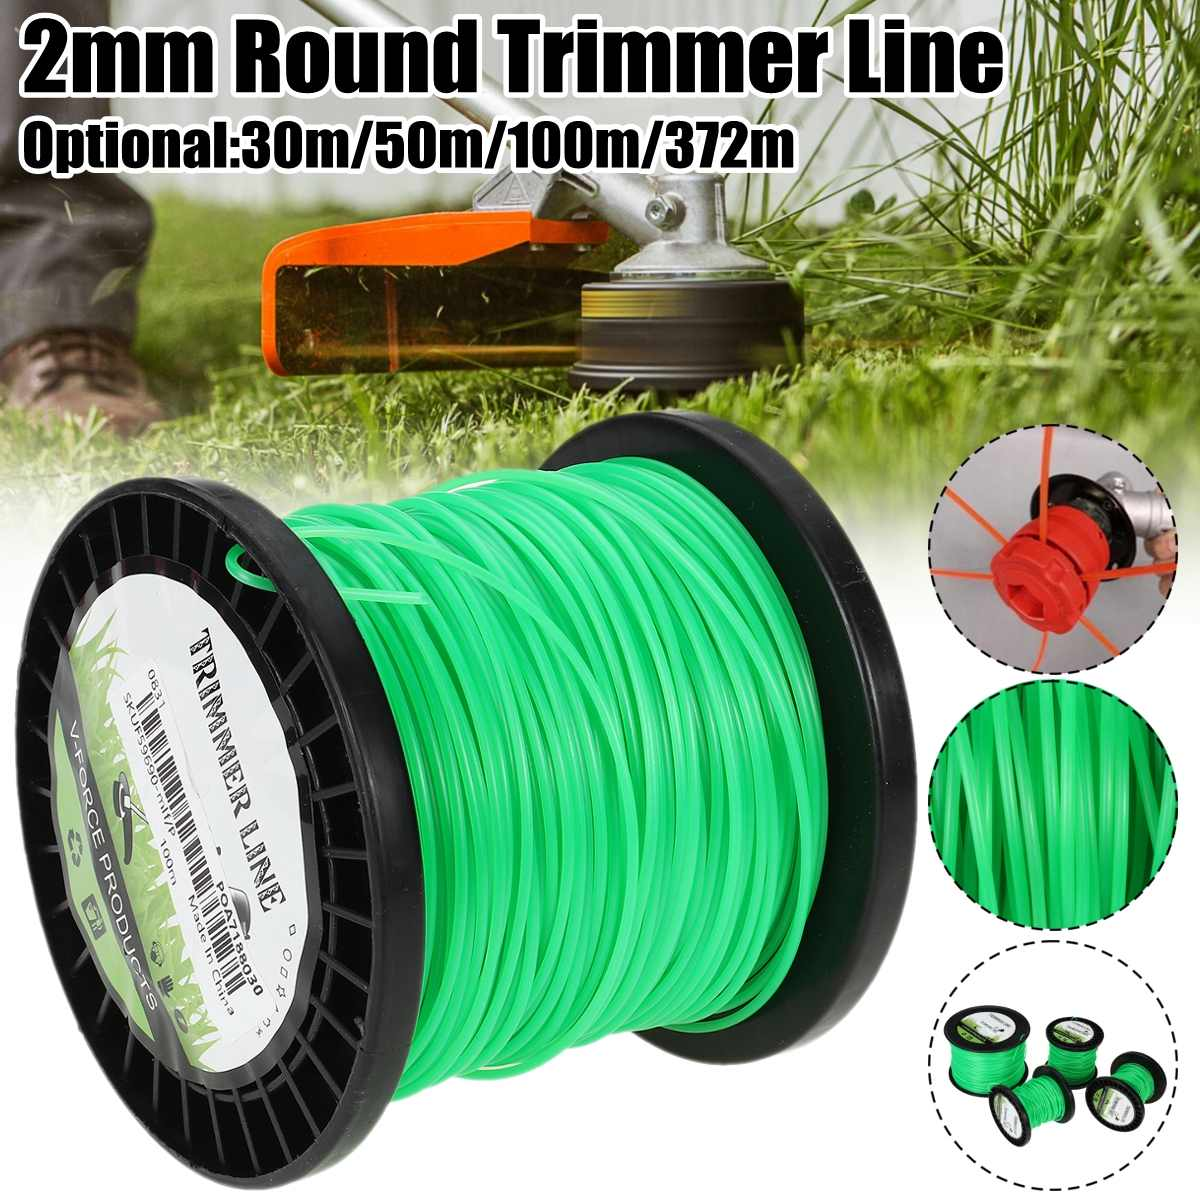 2mm x 50m/100m/372m Strimmer Line Brushcutter Parts Grass Trimmer Nylon Garden Cord Wire Round String Home Garden Tool Supplies